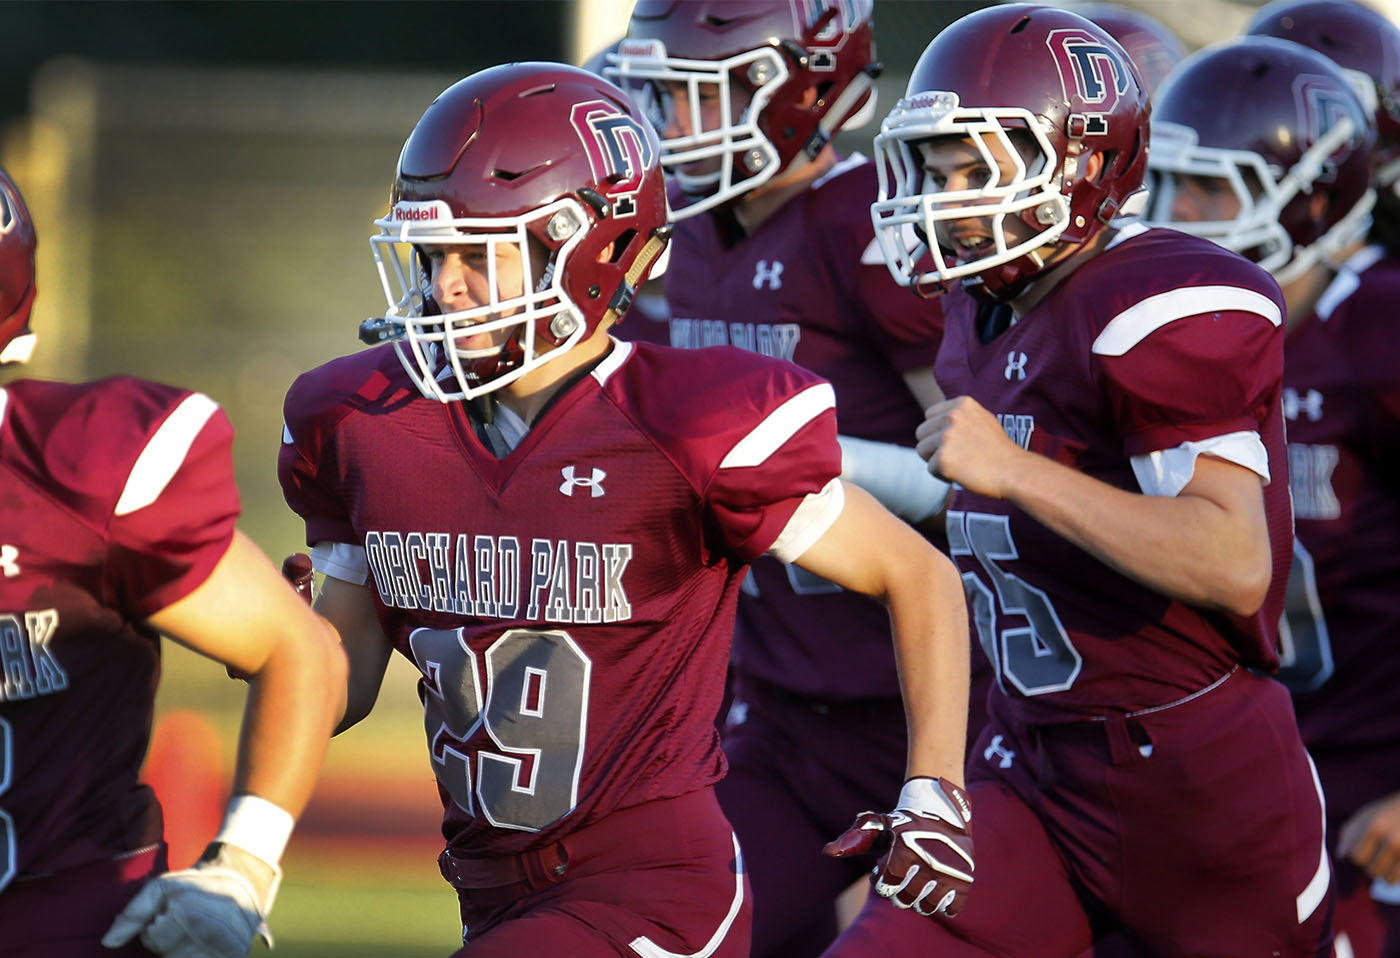 Orchard Park's Jacob Kohler (29) takes the field with his teammates for the game against Pittsford-Mendon in Orchard Park Friday, September 2, 2016. (Mark Mulville/Buffalo News)